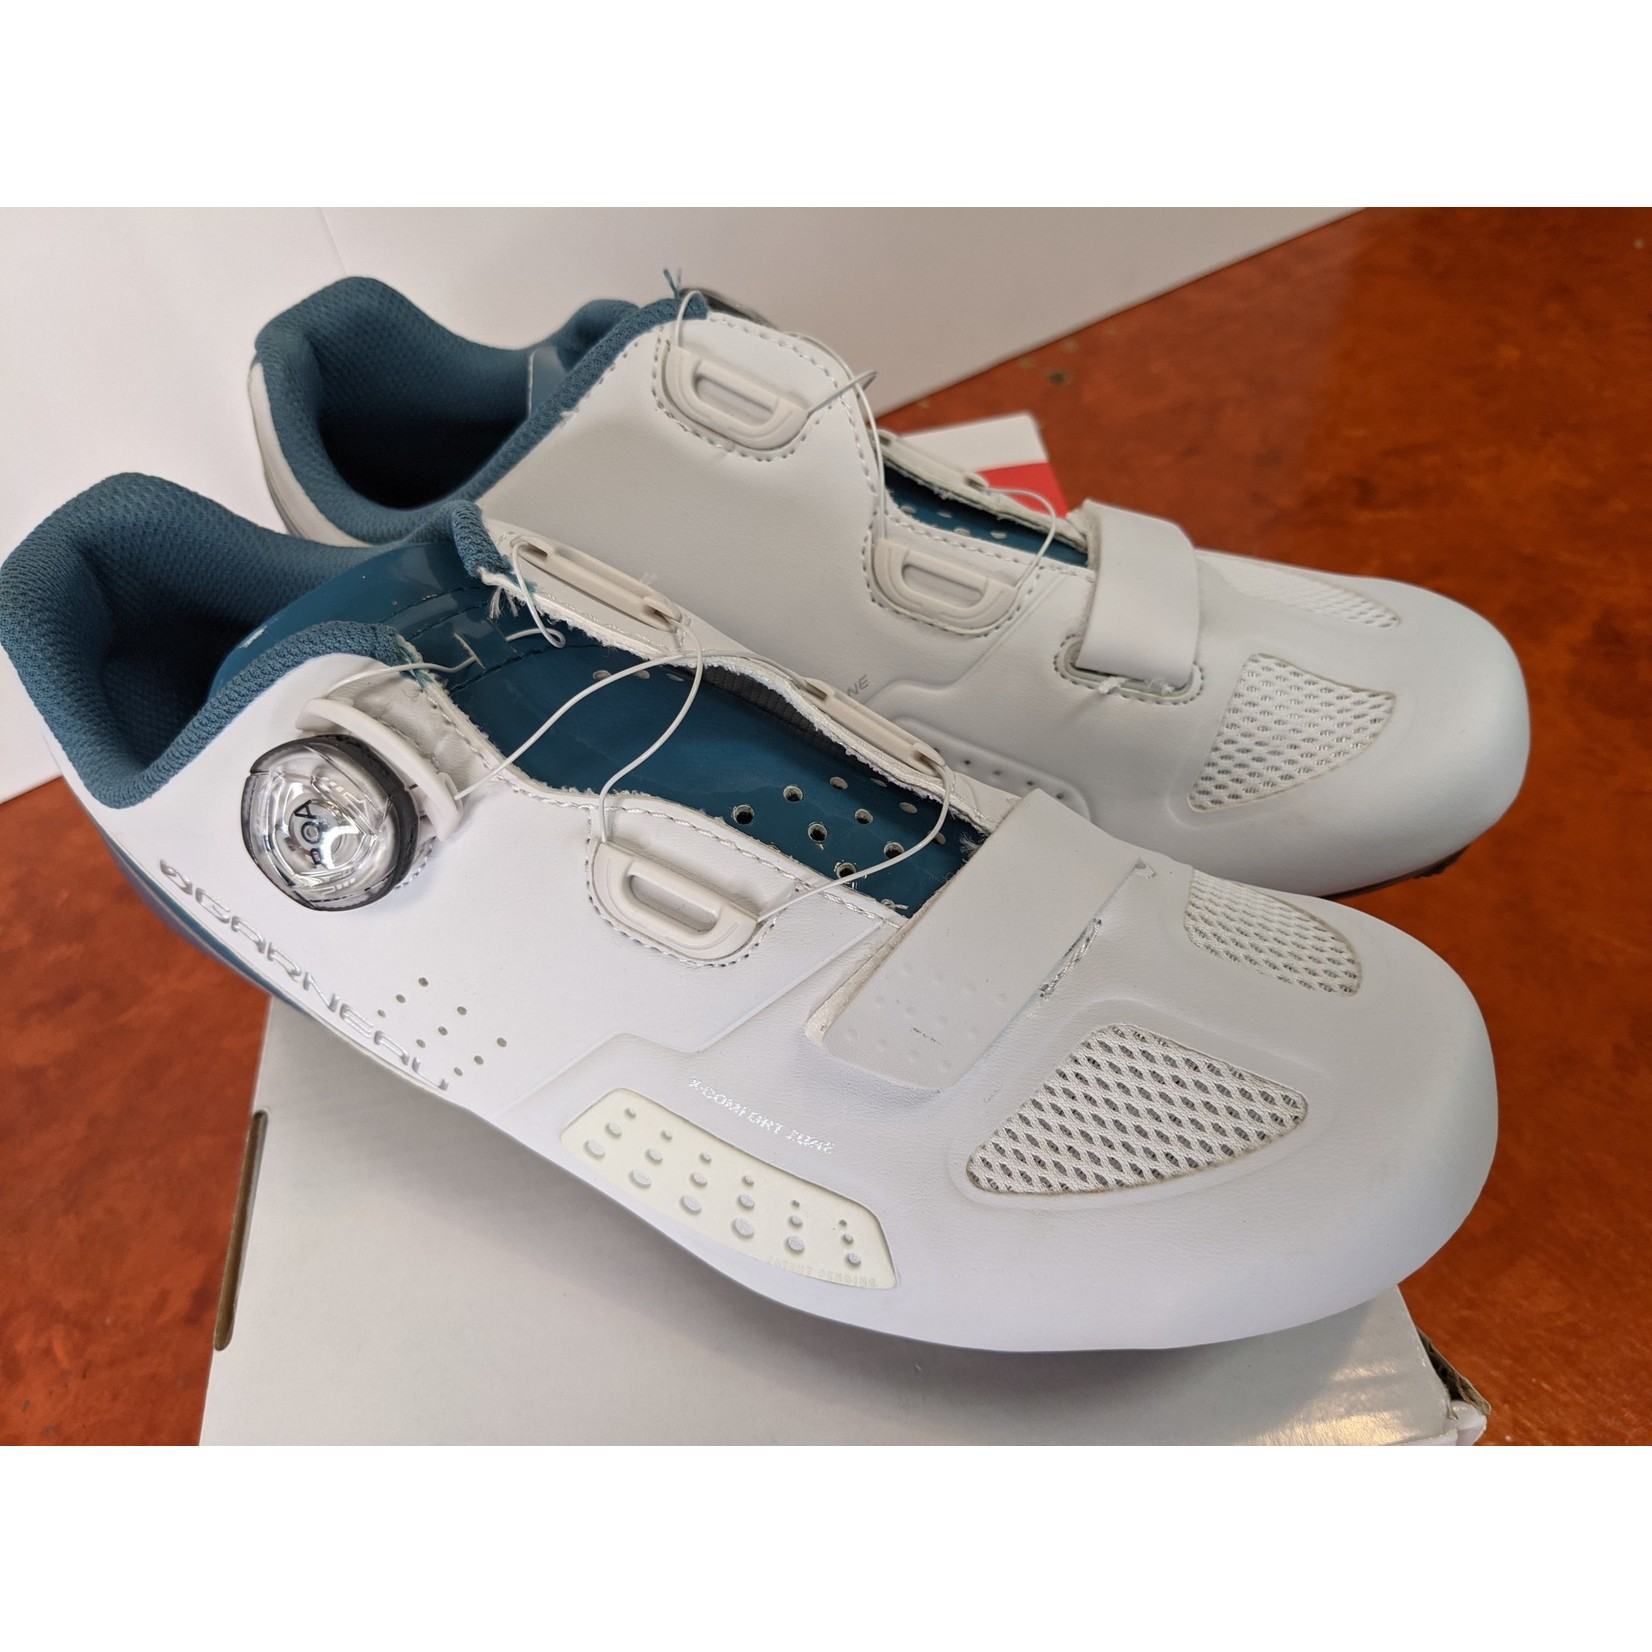 Garneau Garneau Ruby II Shoes - White, Women's, Size 43